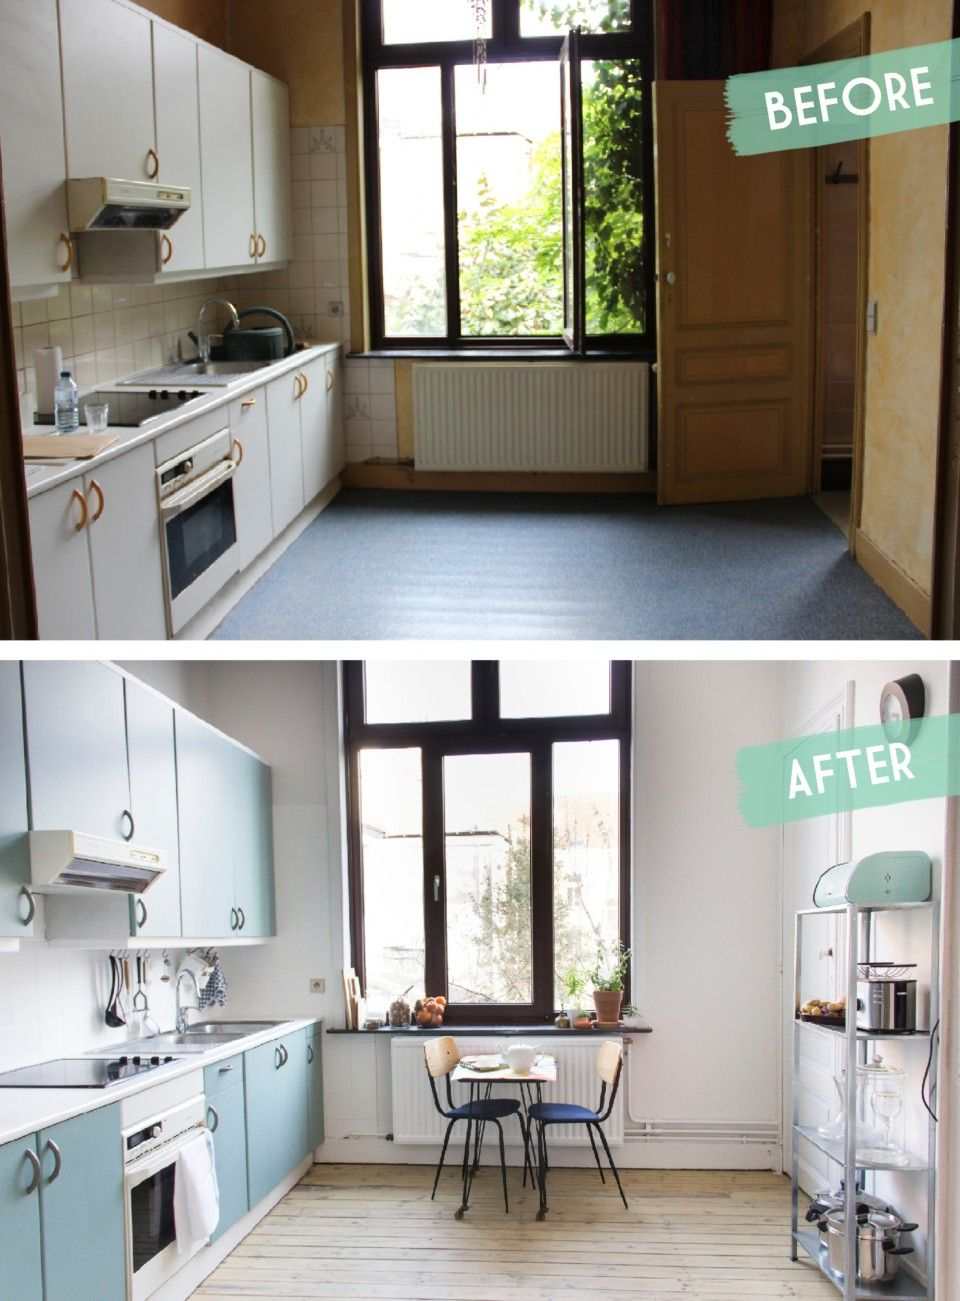 Kitchen makeover before after une cuisine avant - Cuisine avant apres relooking ...